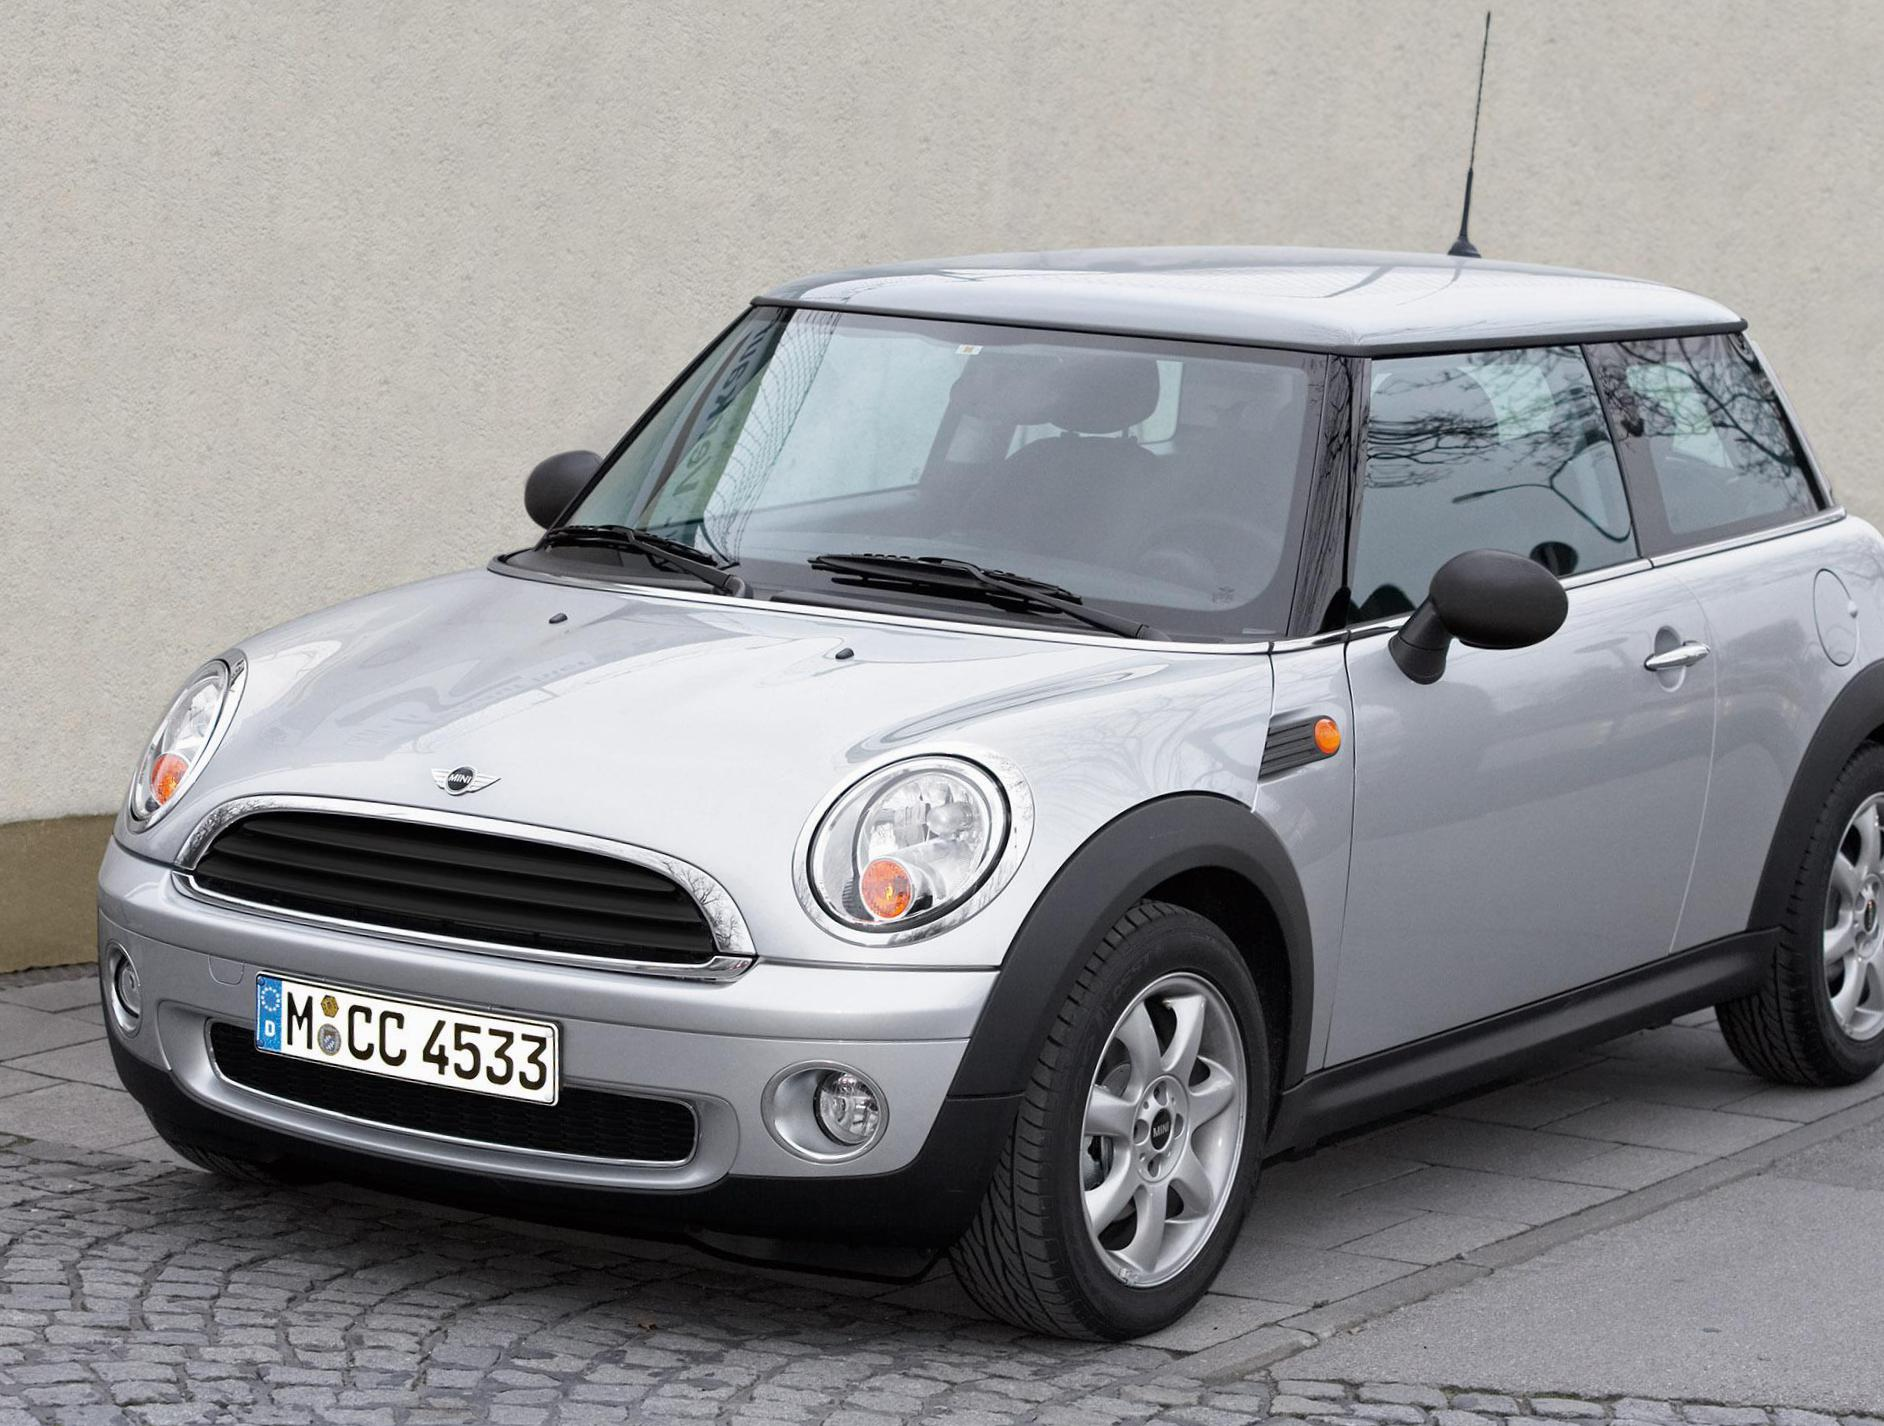 One MINI Specification 2006